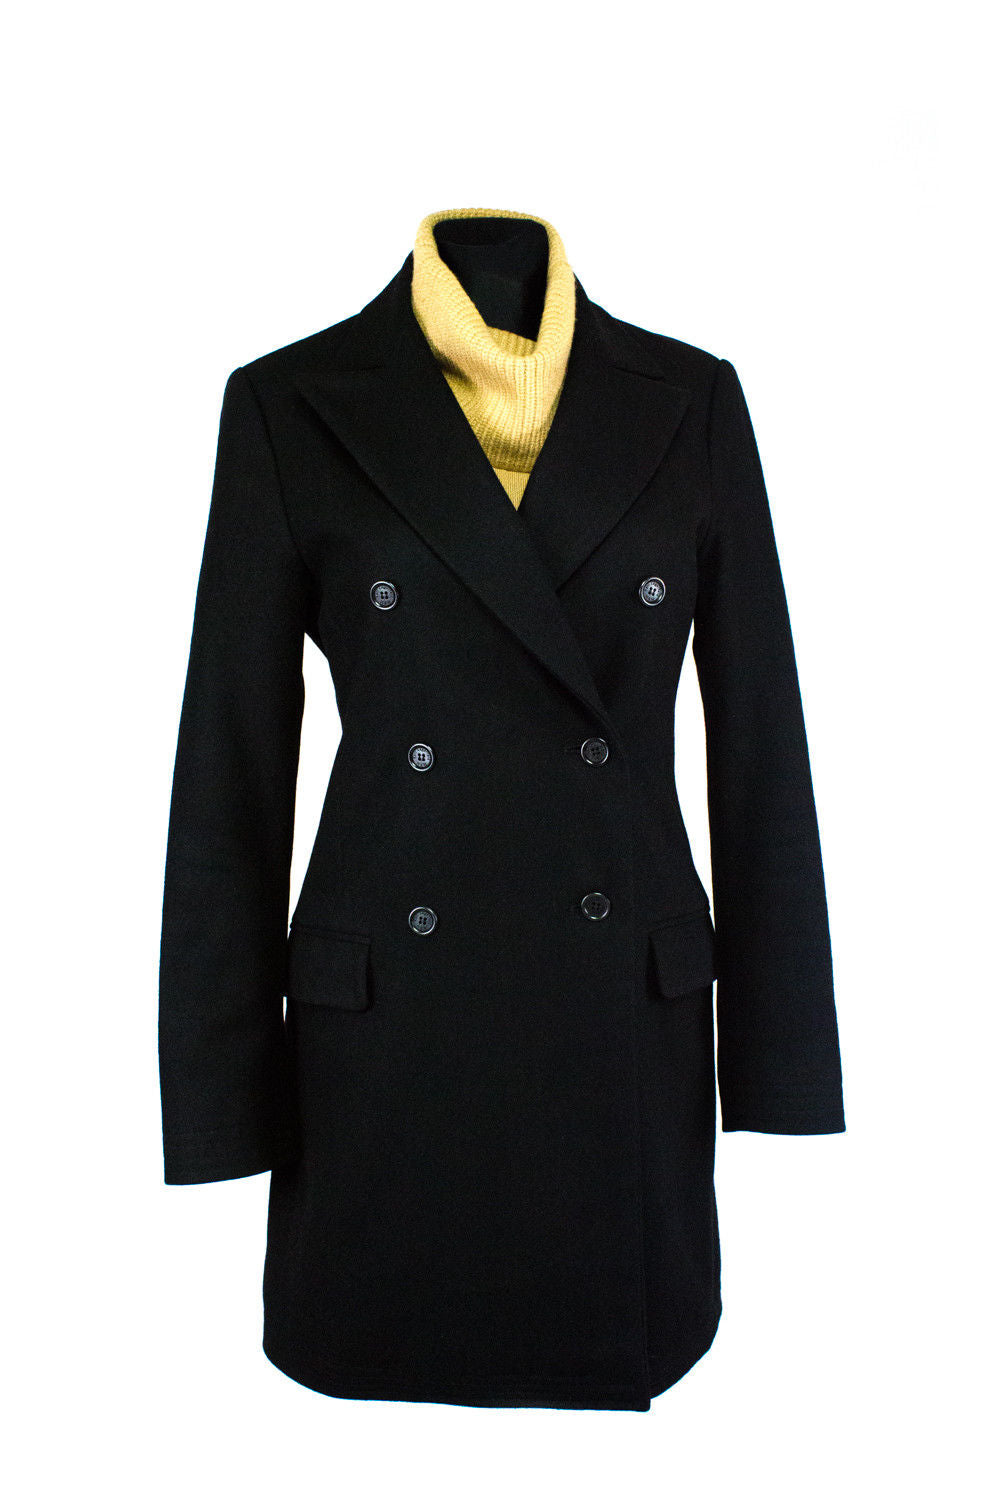 KARL LAGERFELD x H&M Black Cashmere-Wool Double Breasted Coat SIZE US 8 - secondfirst